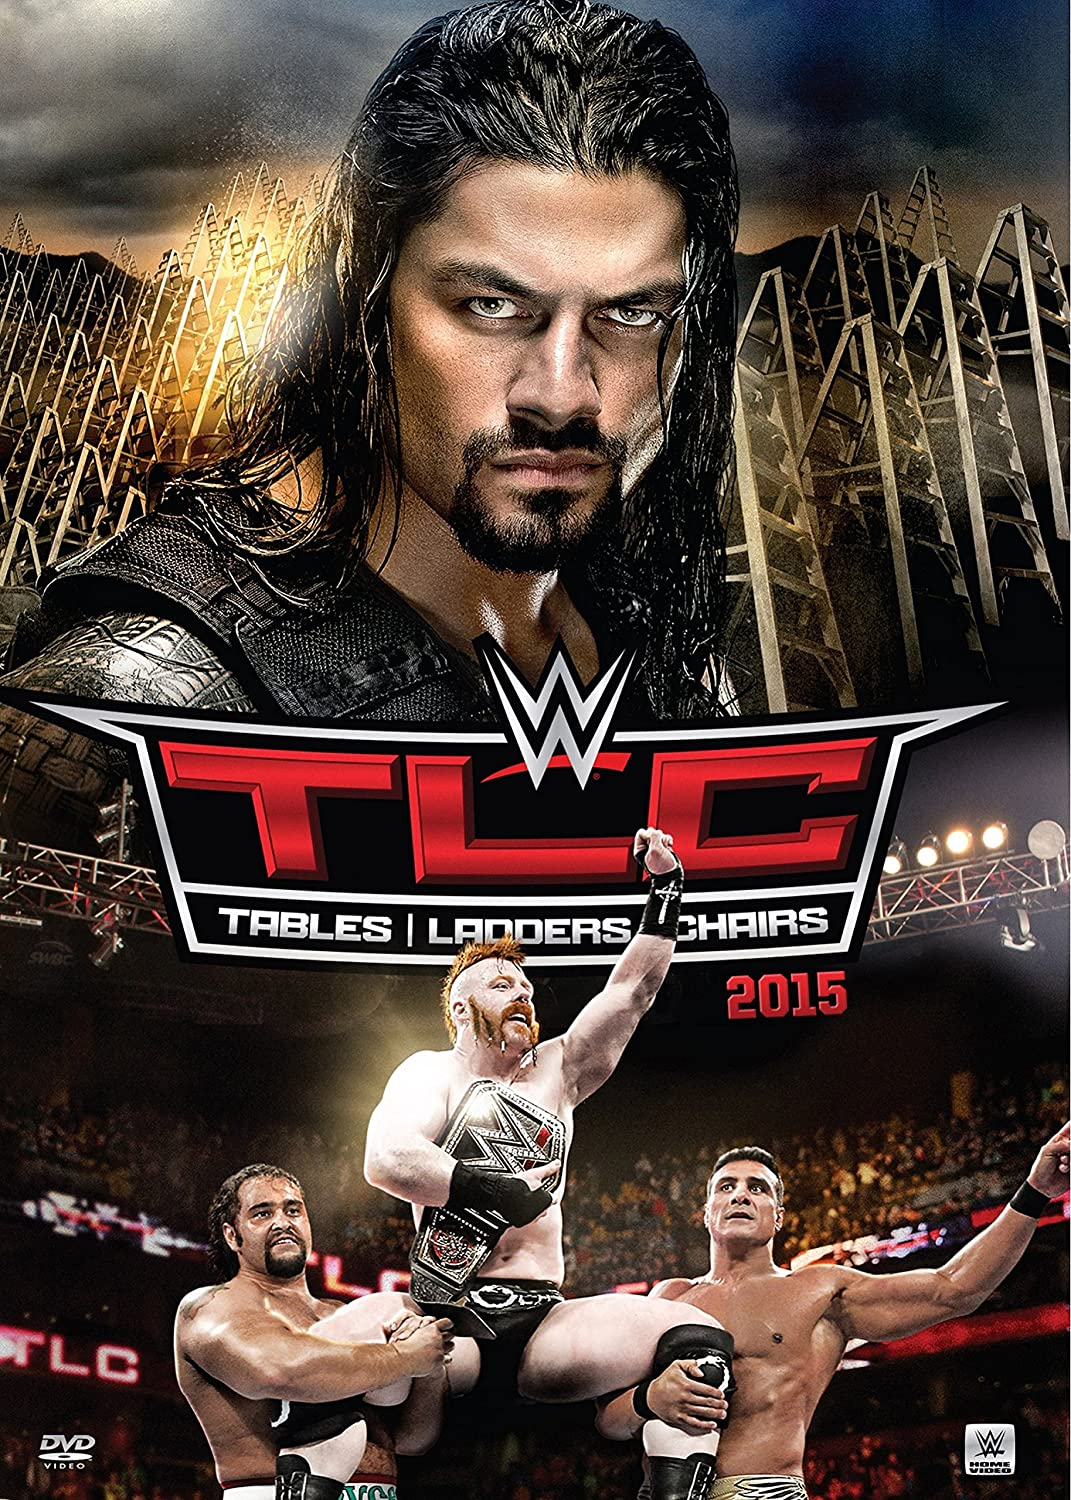 Wwe tables ladders and chairs 2013 poster - Amazon Com Wwe Tlc Tables Ladders And Chairs 2015 Sheamus Roman Reigns Kevin Owens Dean Ambrose The New Day The Usos Lucha Dragons